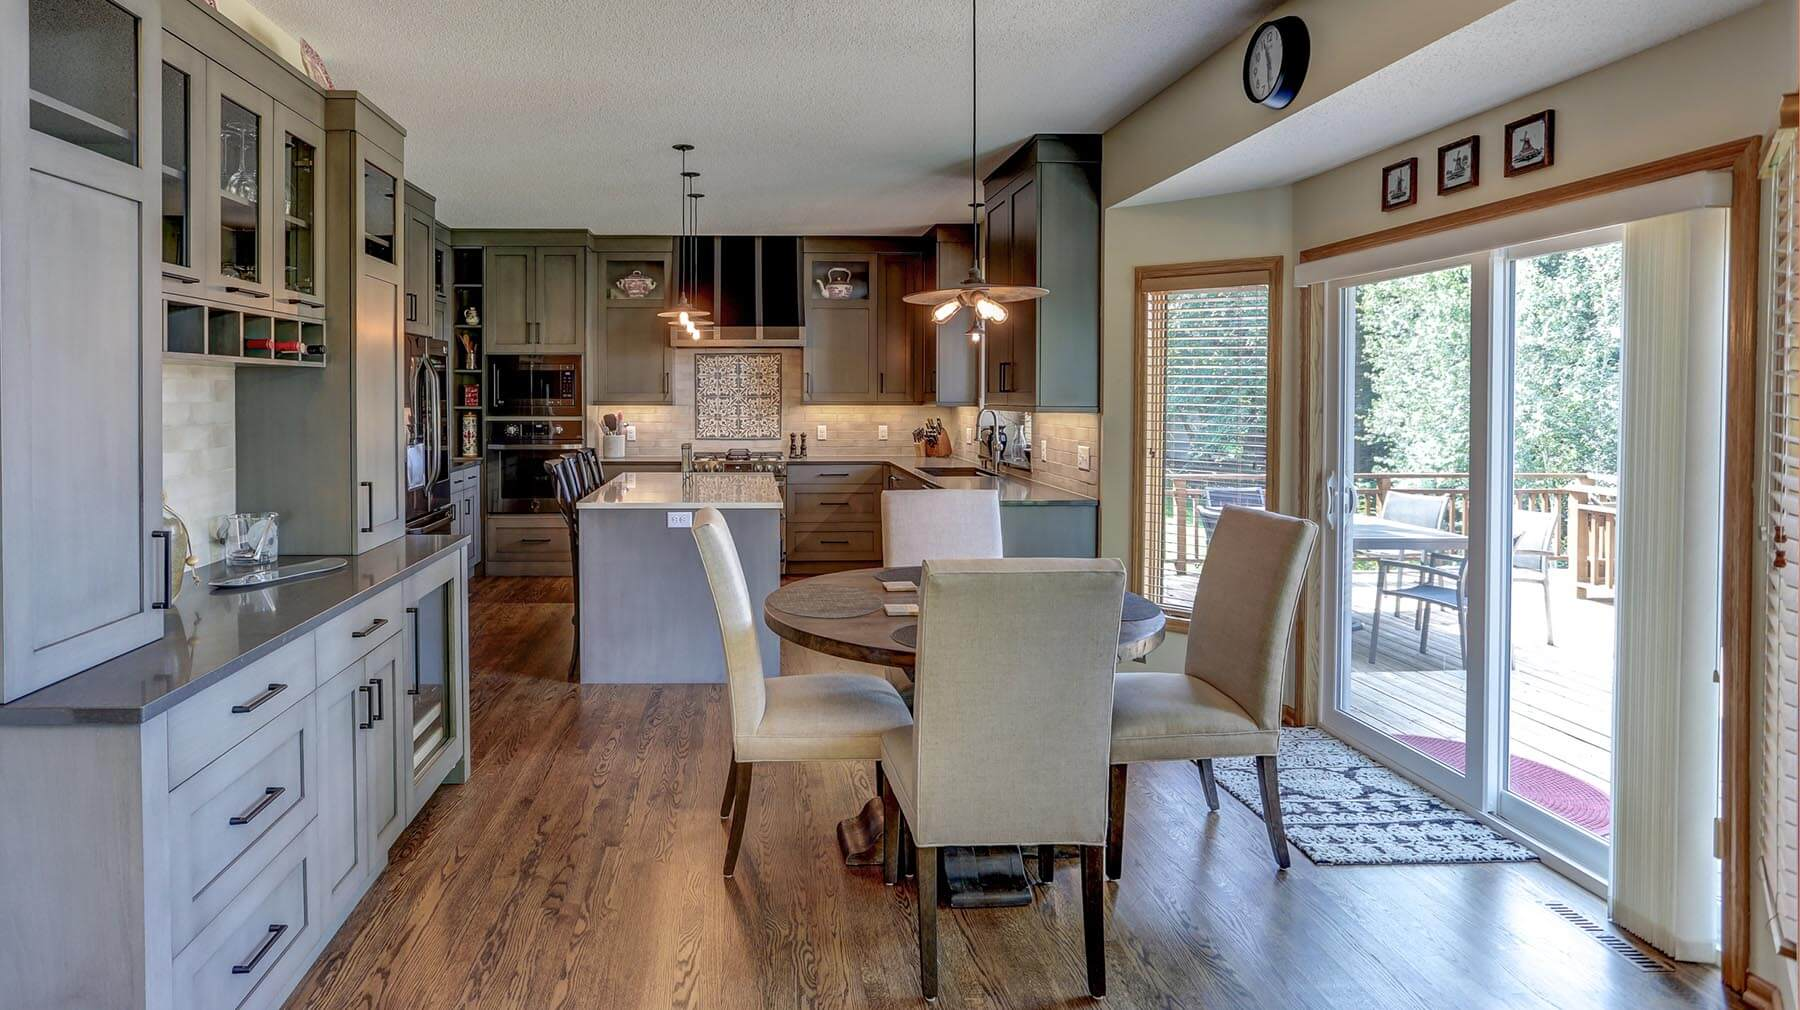 Eat-in dining in an updated kitchen remodel by Titus Contracting